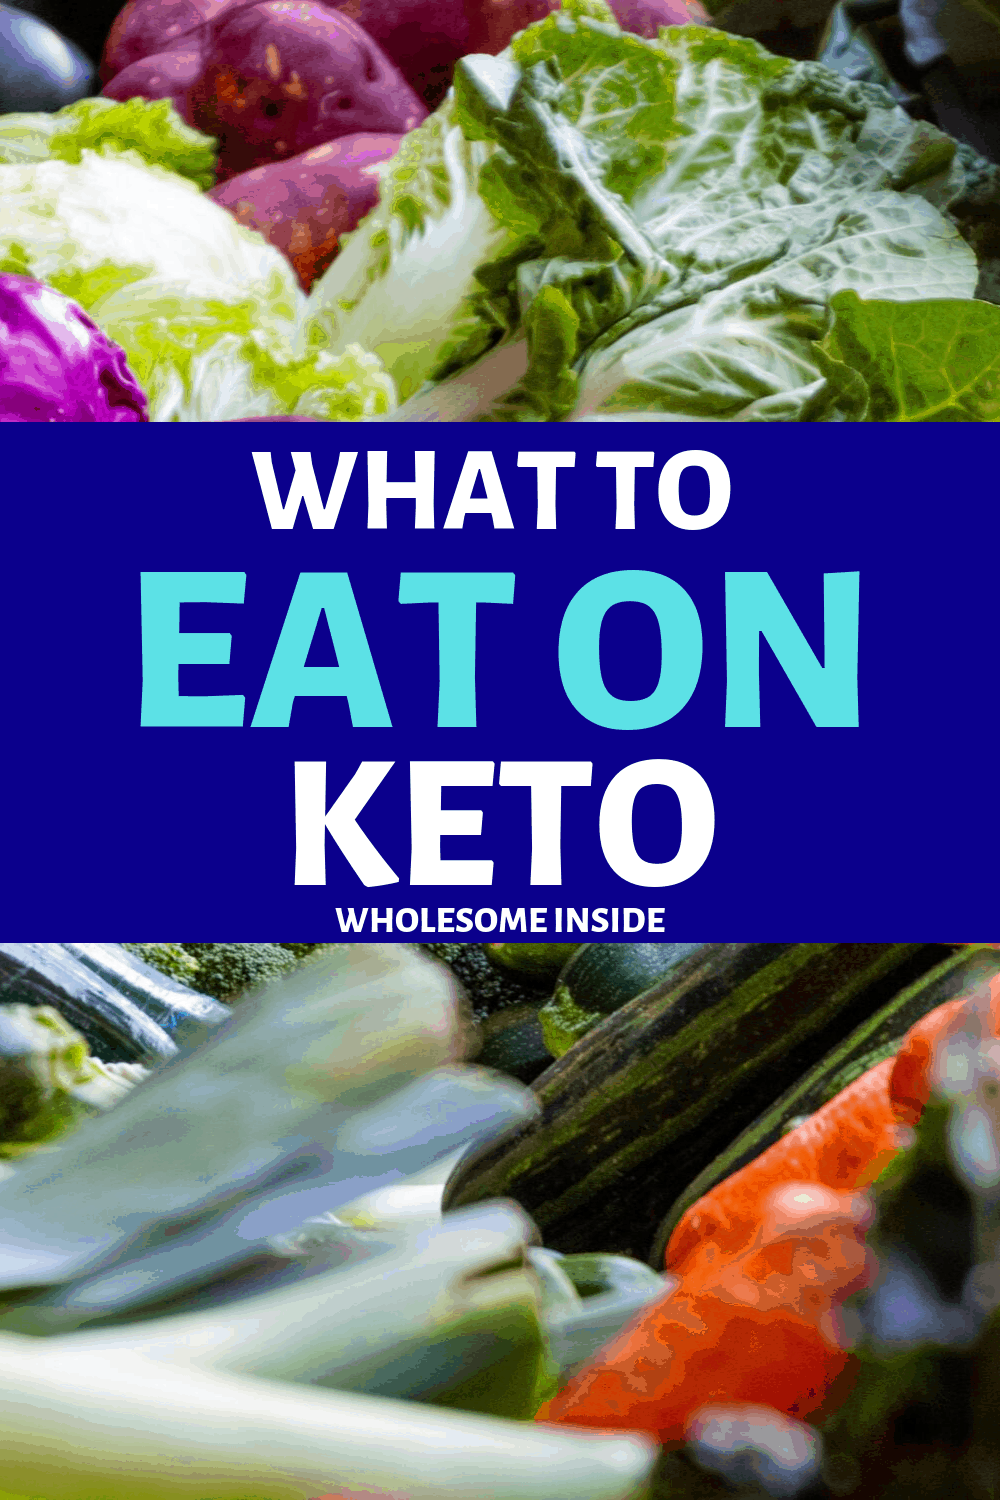 What can you eat on the keto diet